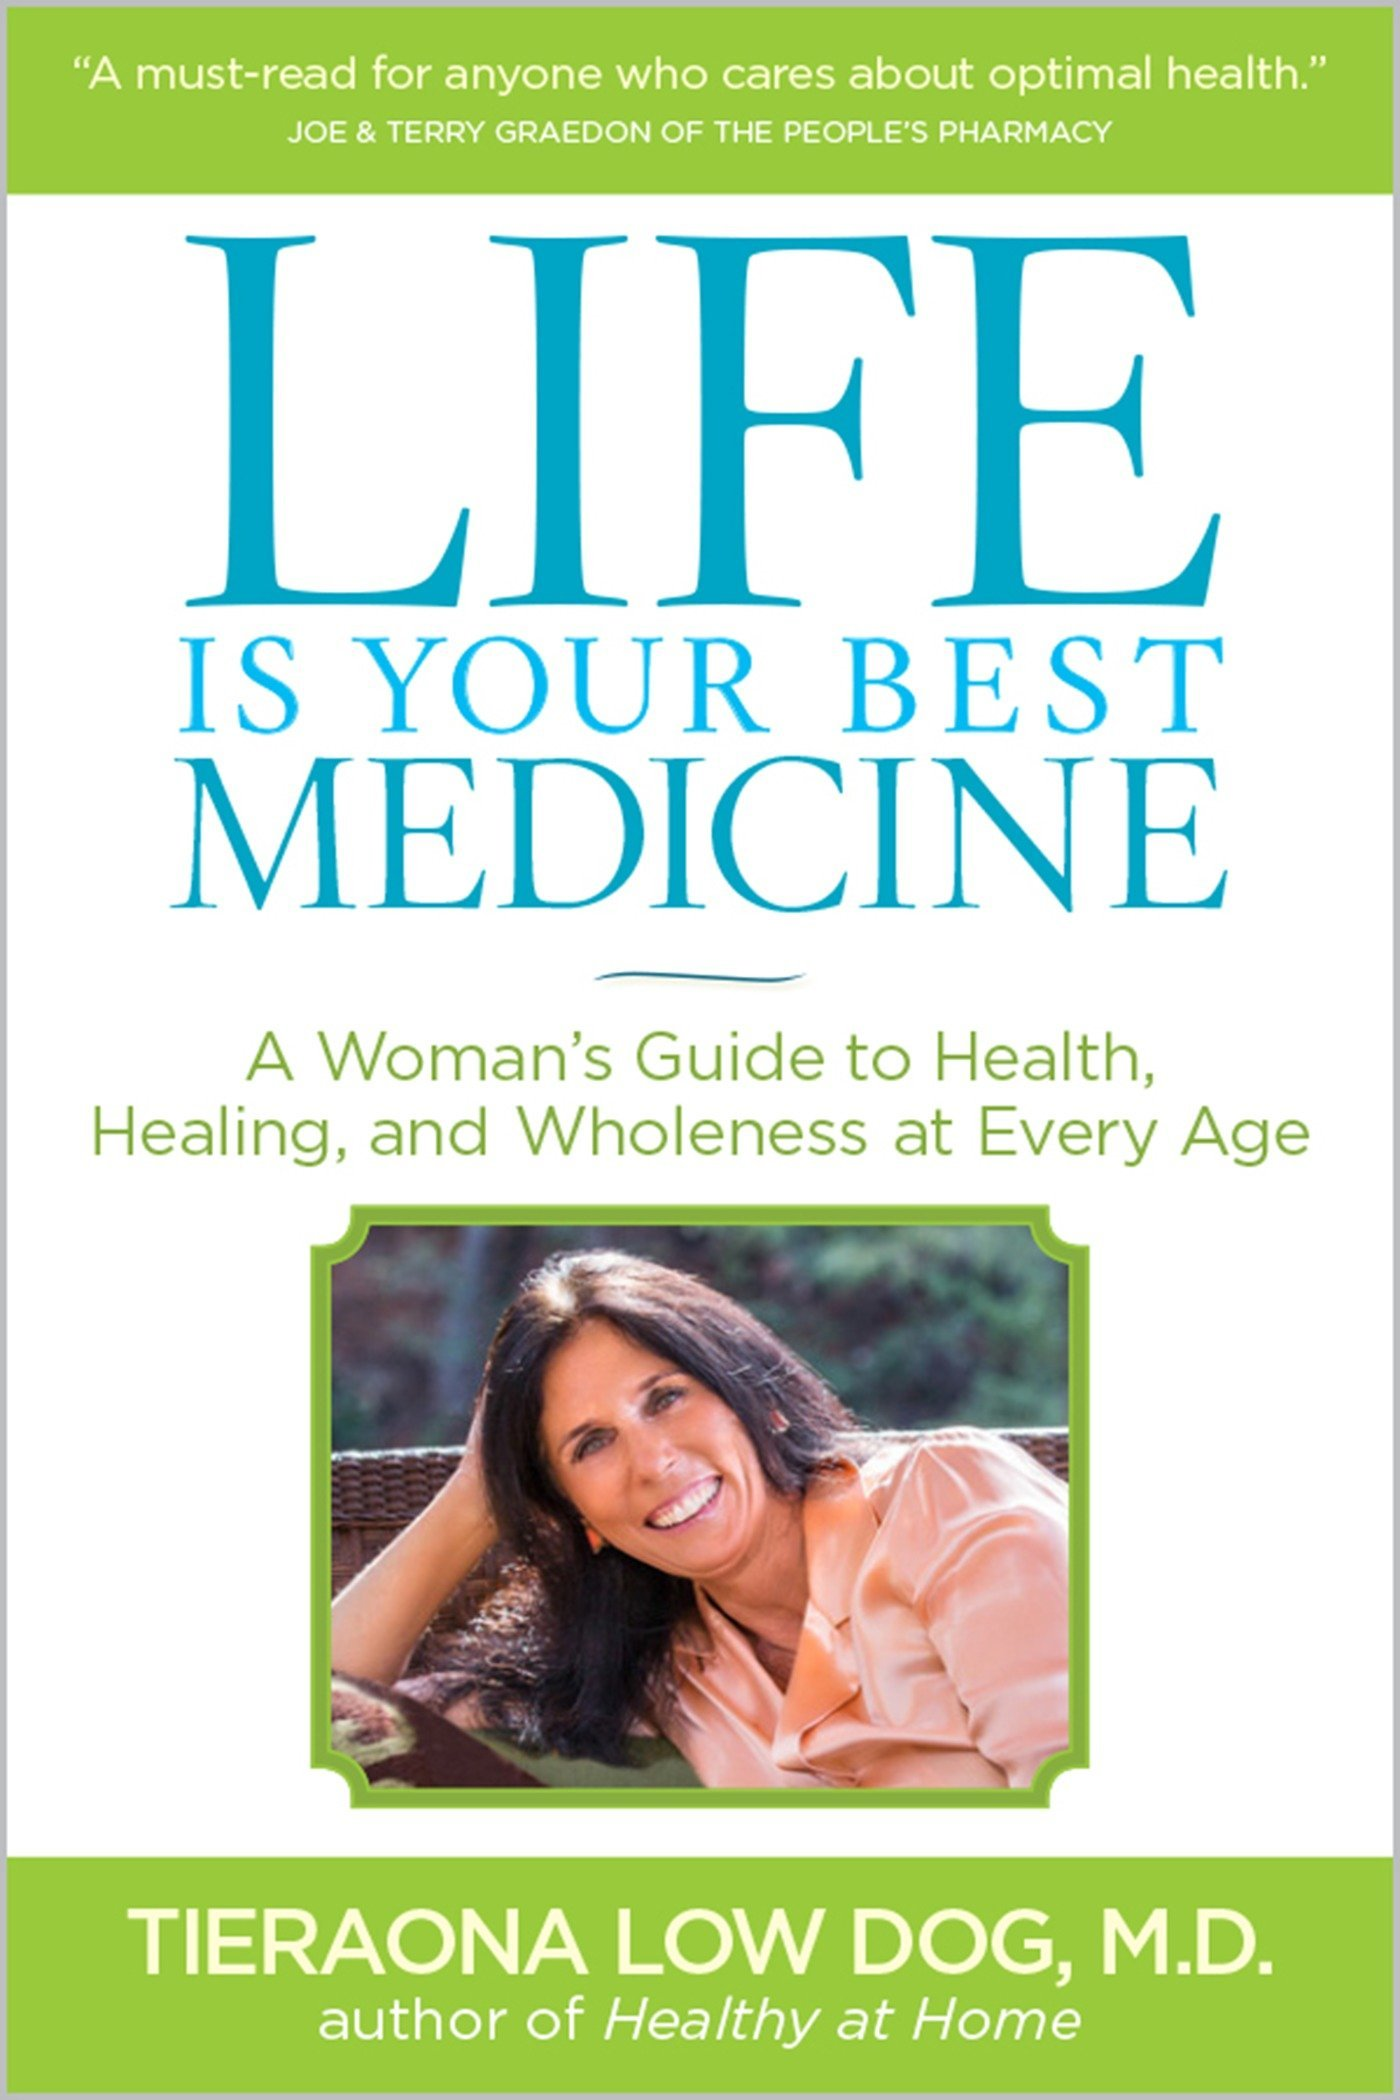 Life Is Your Best Medicine: A Woman's Guide to Health, Healing, and  Wholeness at Every Age Paperback – April 29, 2014